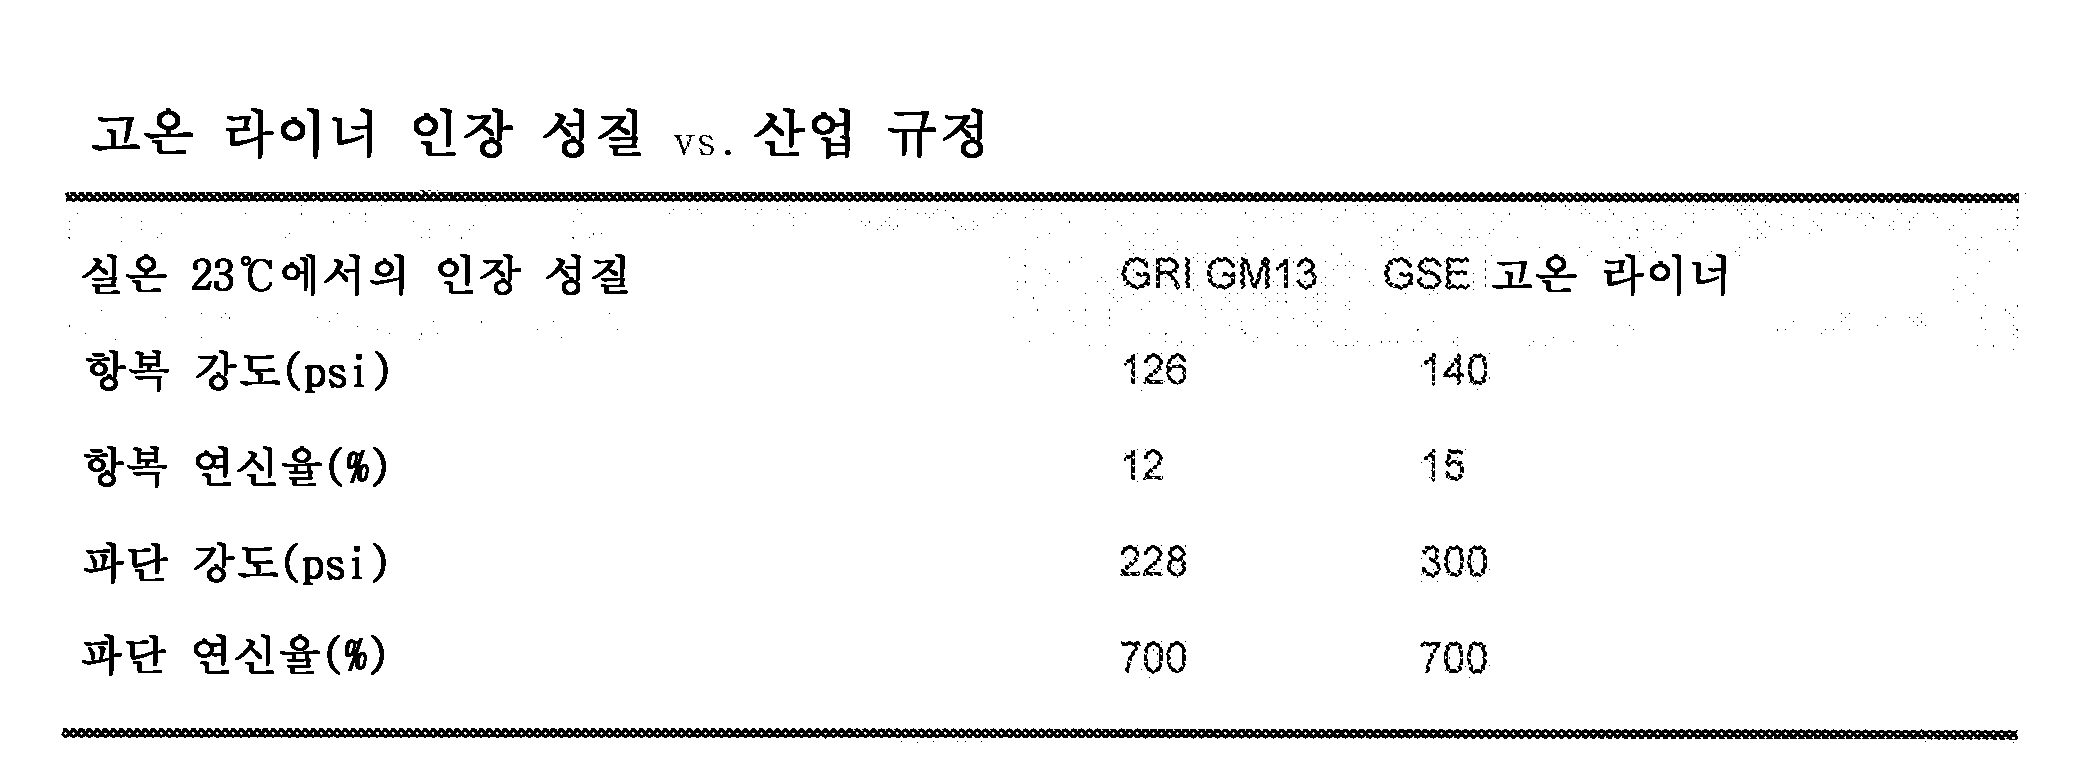 KR20160017057A - High temperature geomembrane liners and master